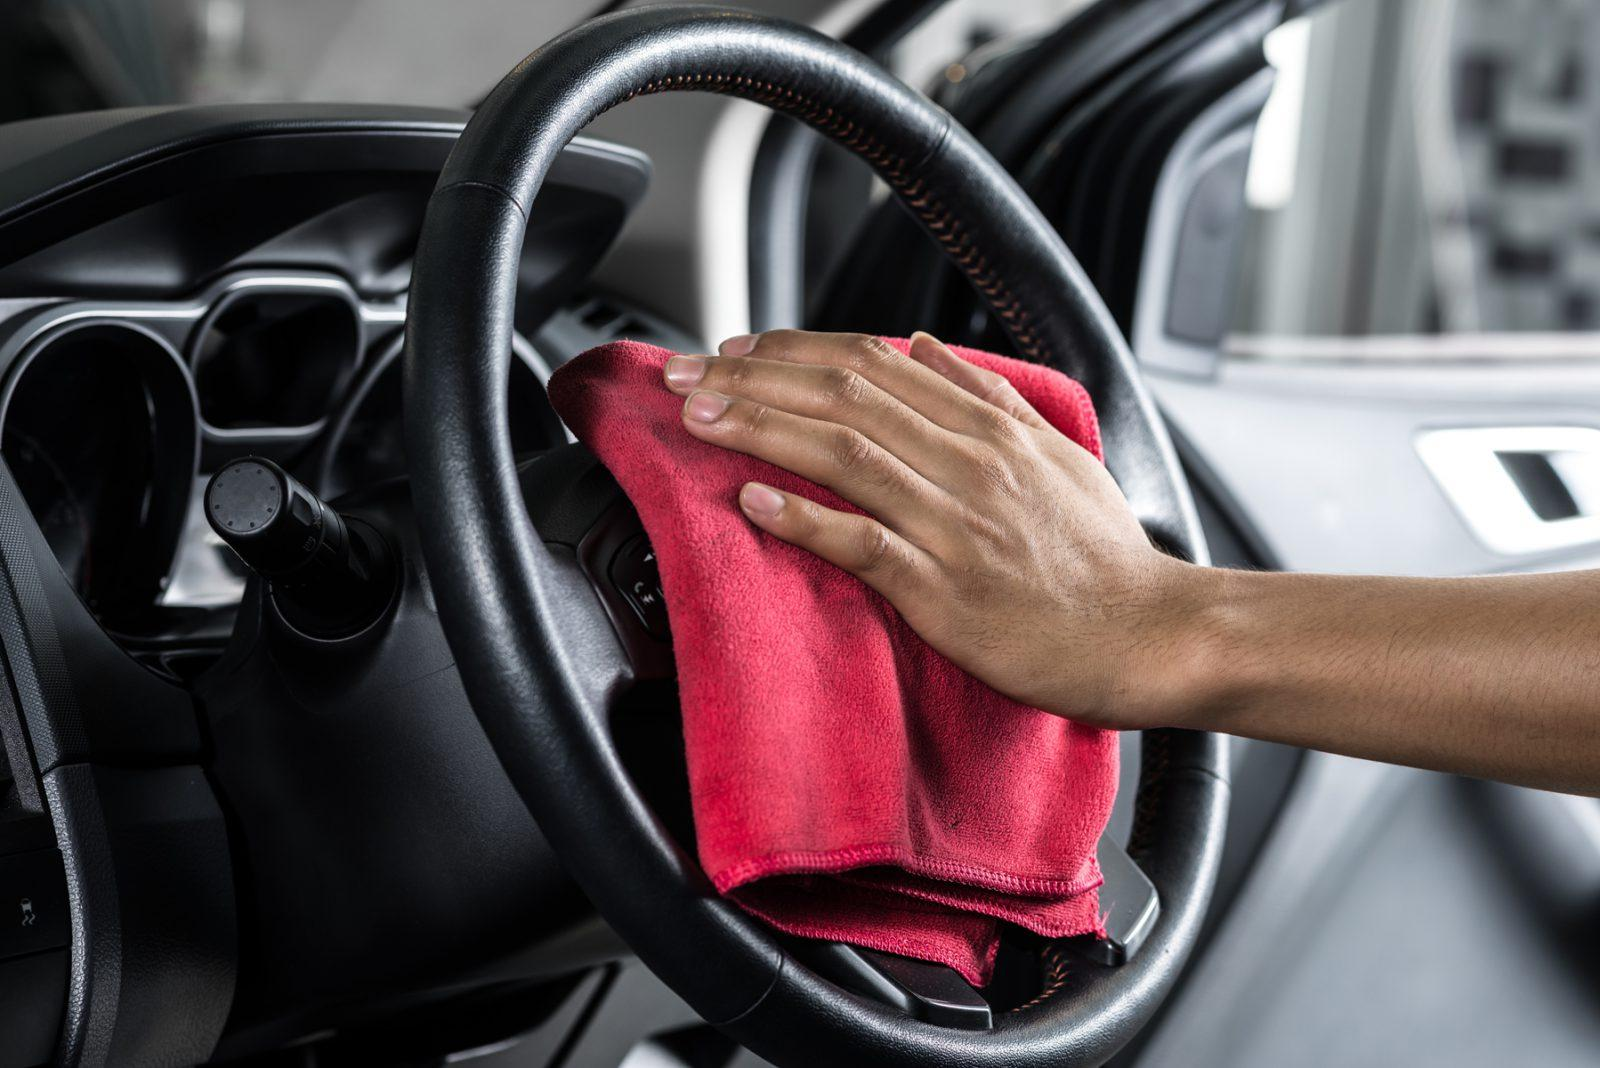 book doorstep a our services interior carwash auto car and cleaner closeup wash smart detailing